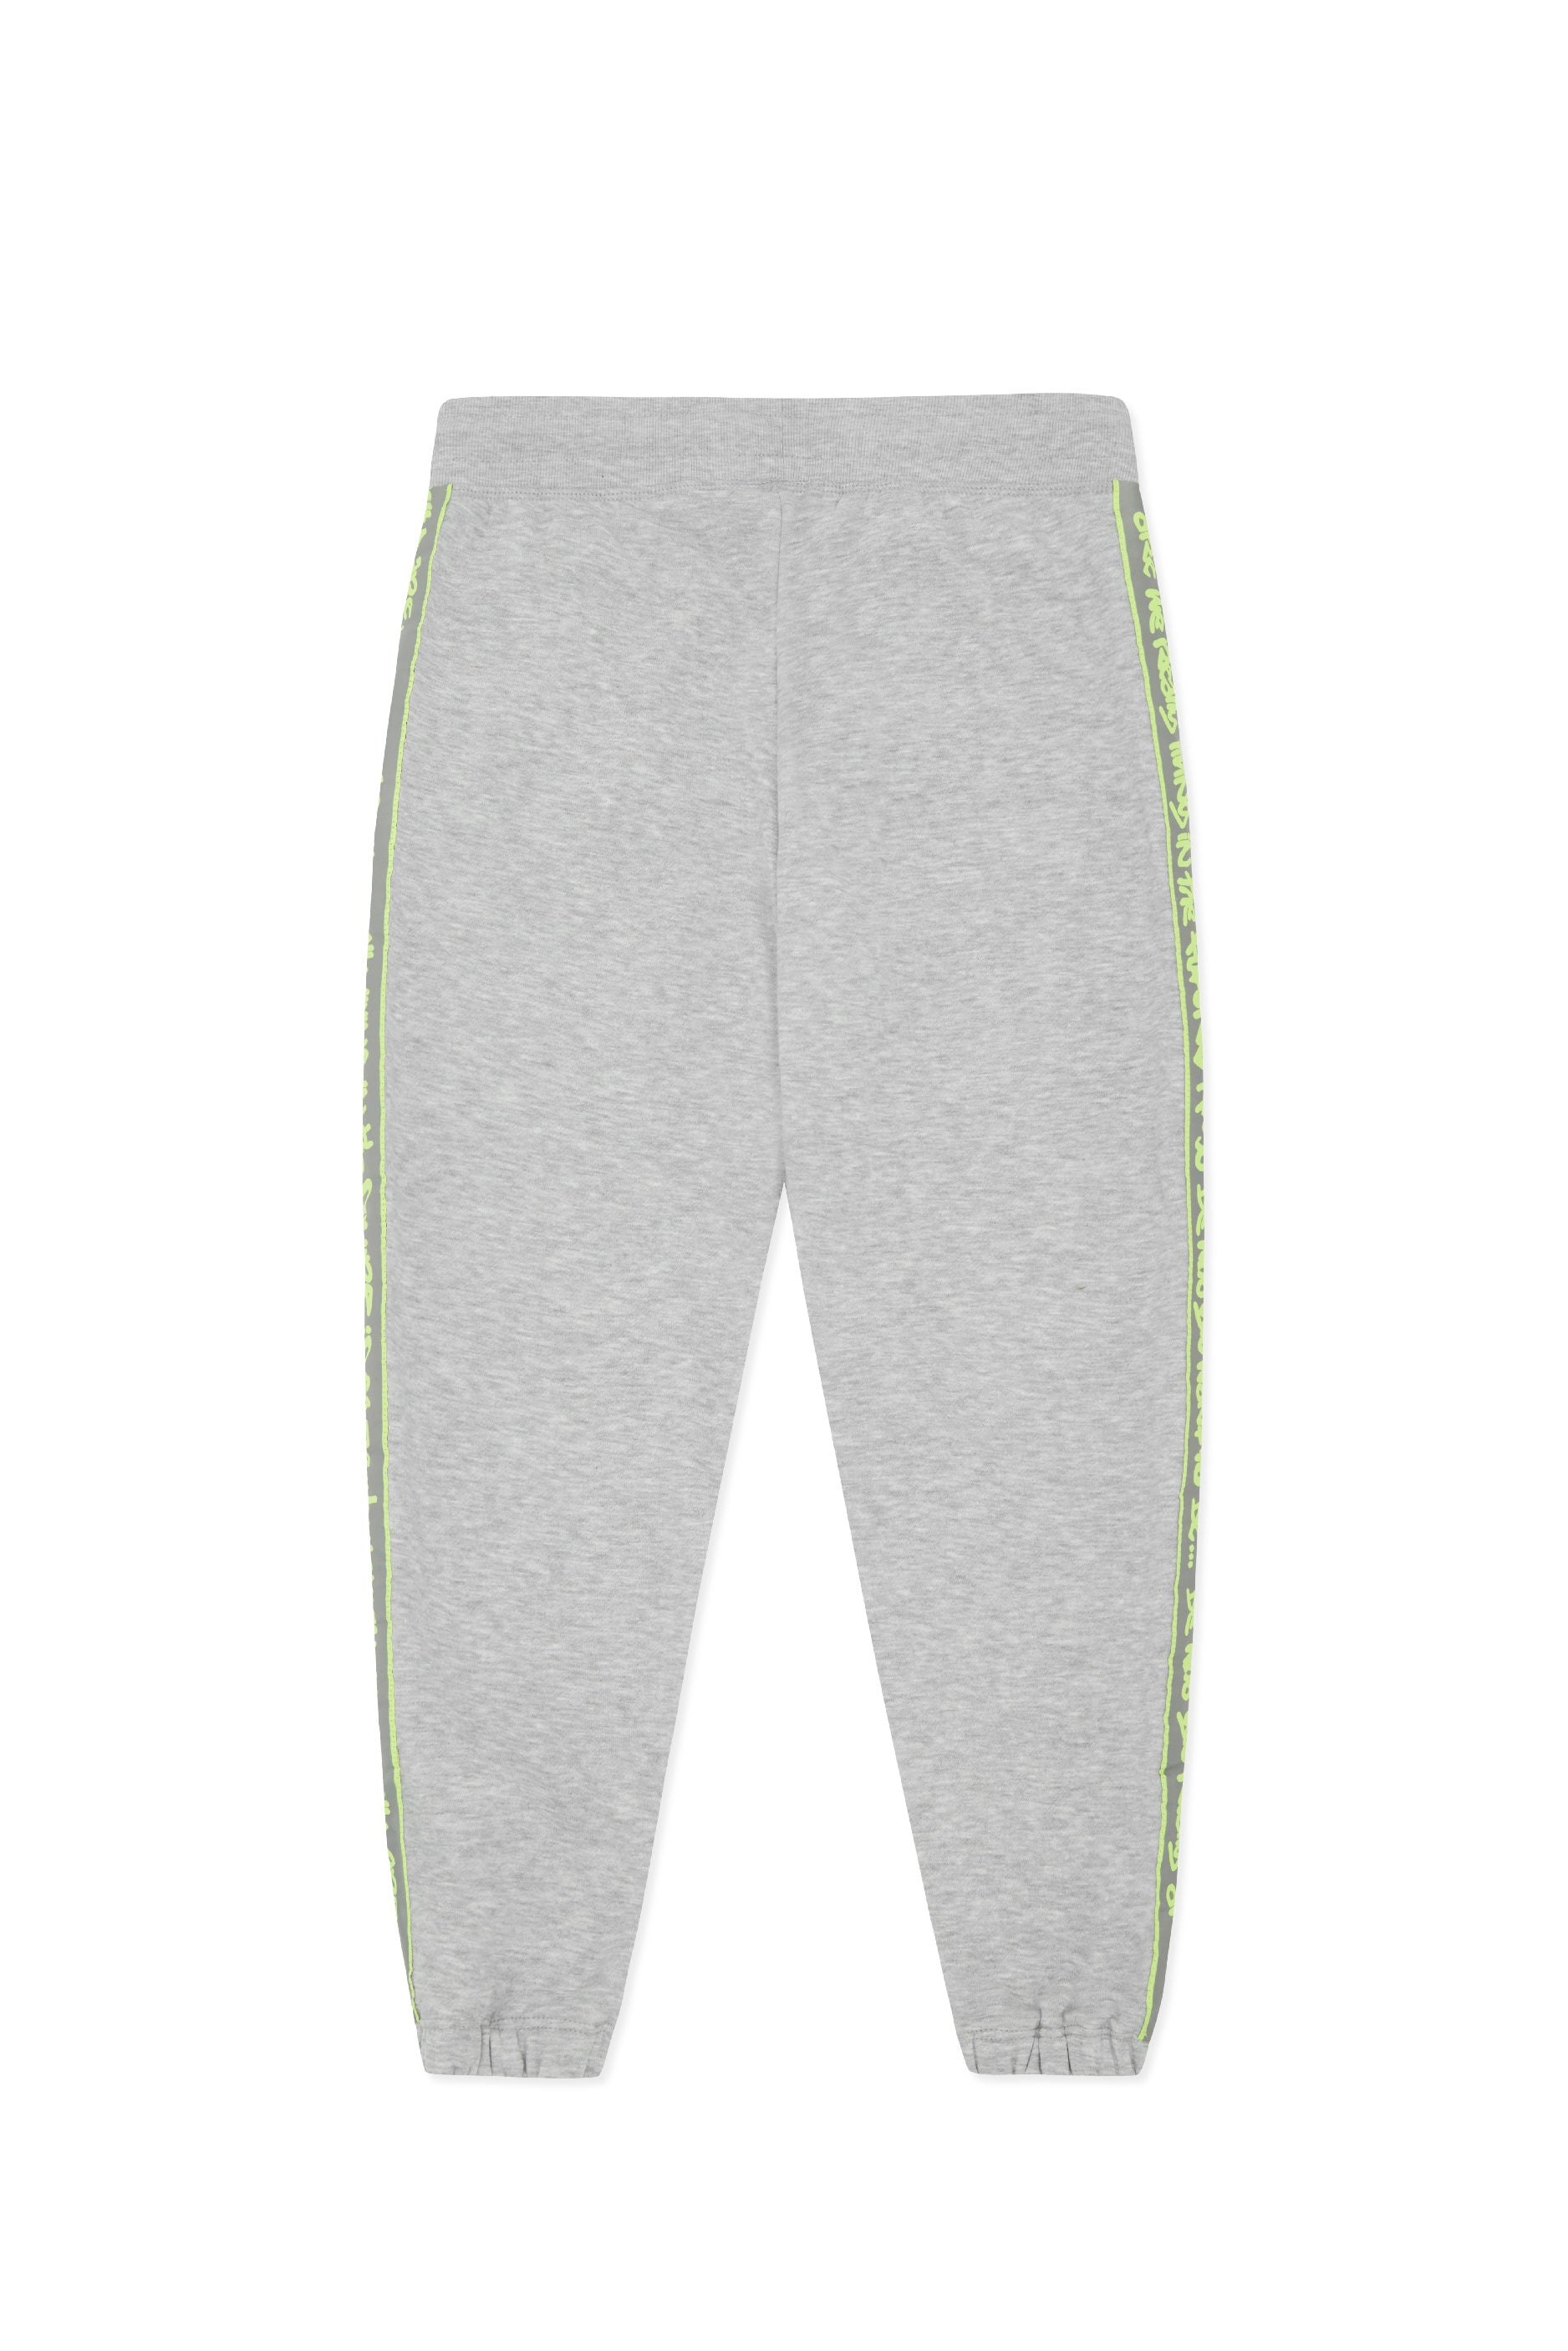 Lex Tracksuit  Bottoms- Sleeve Graffiti Taping